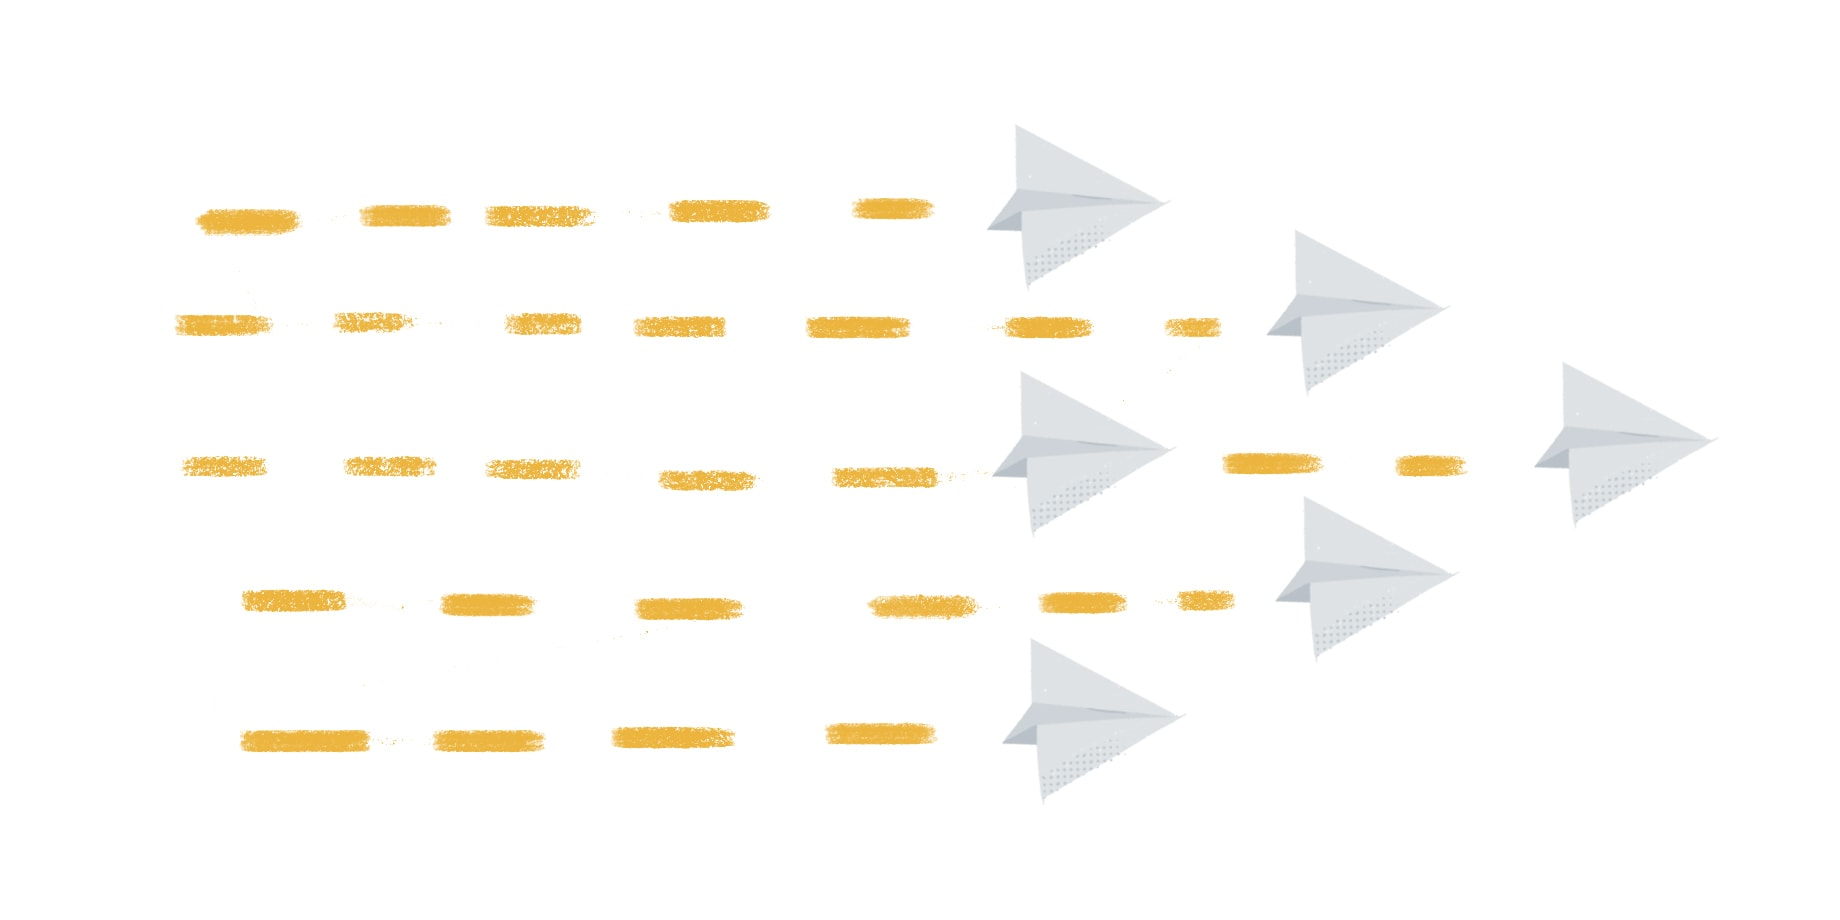 A strong internal communication strategy begins with leadership transparently sharing information, as depicted by this image of paper planes flying in the same direction